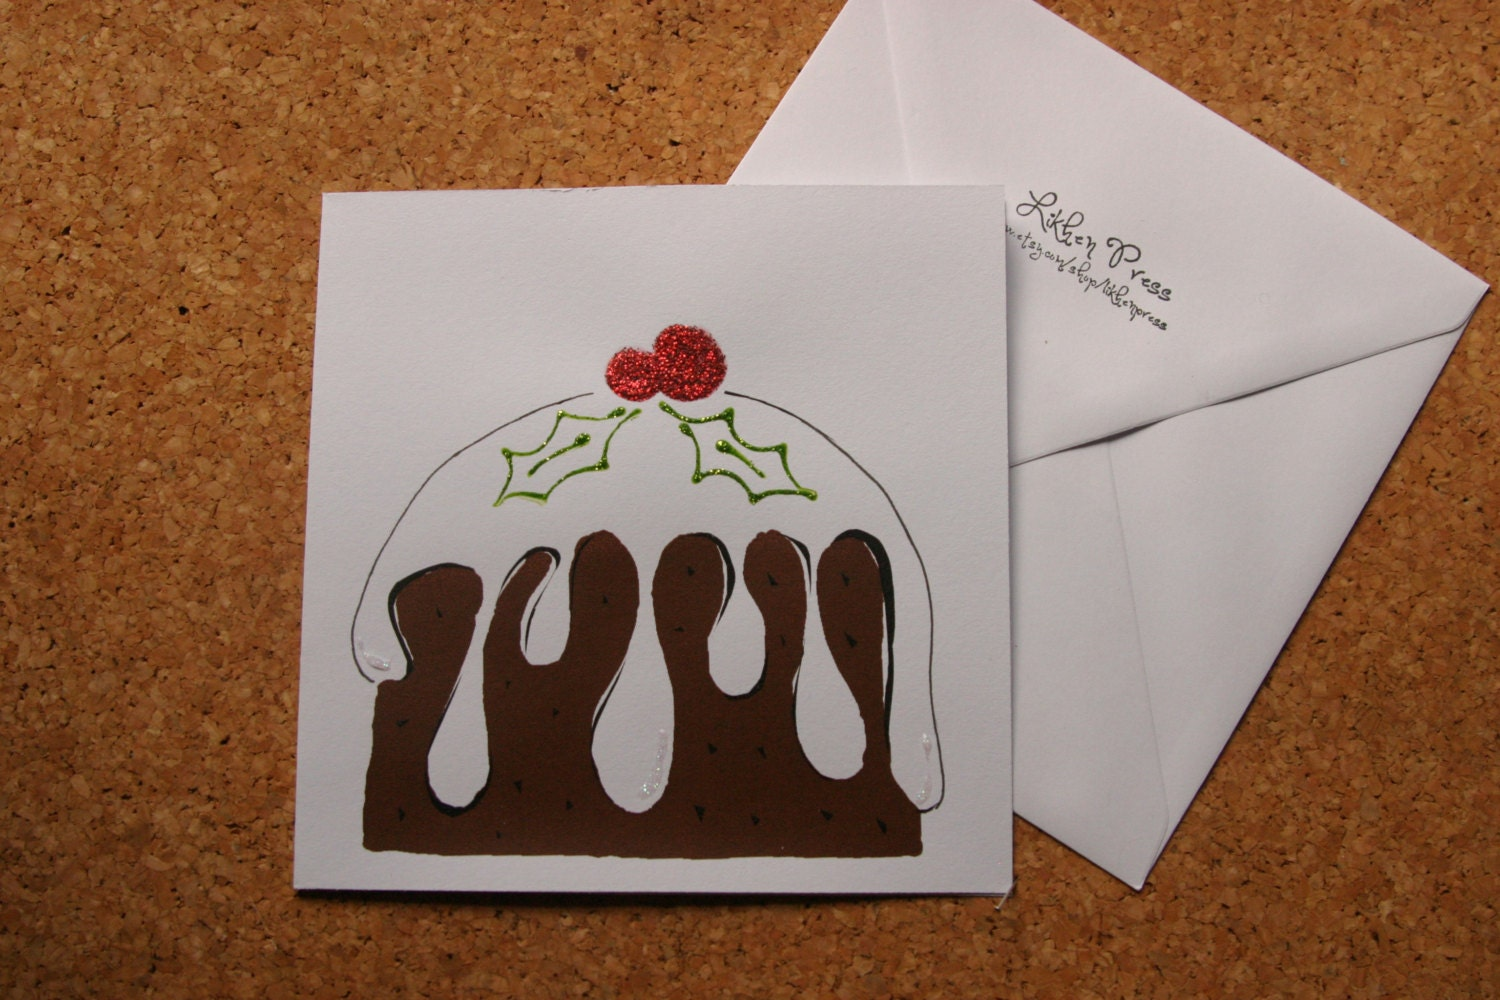 Lovely Christmas Pudding Card - LikhenPress